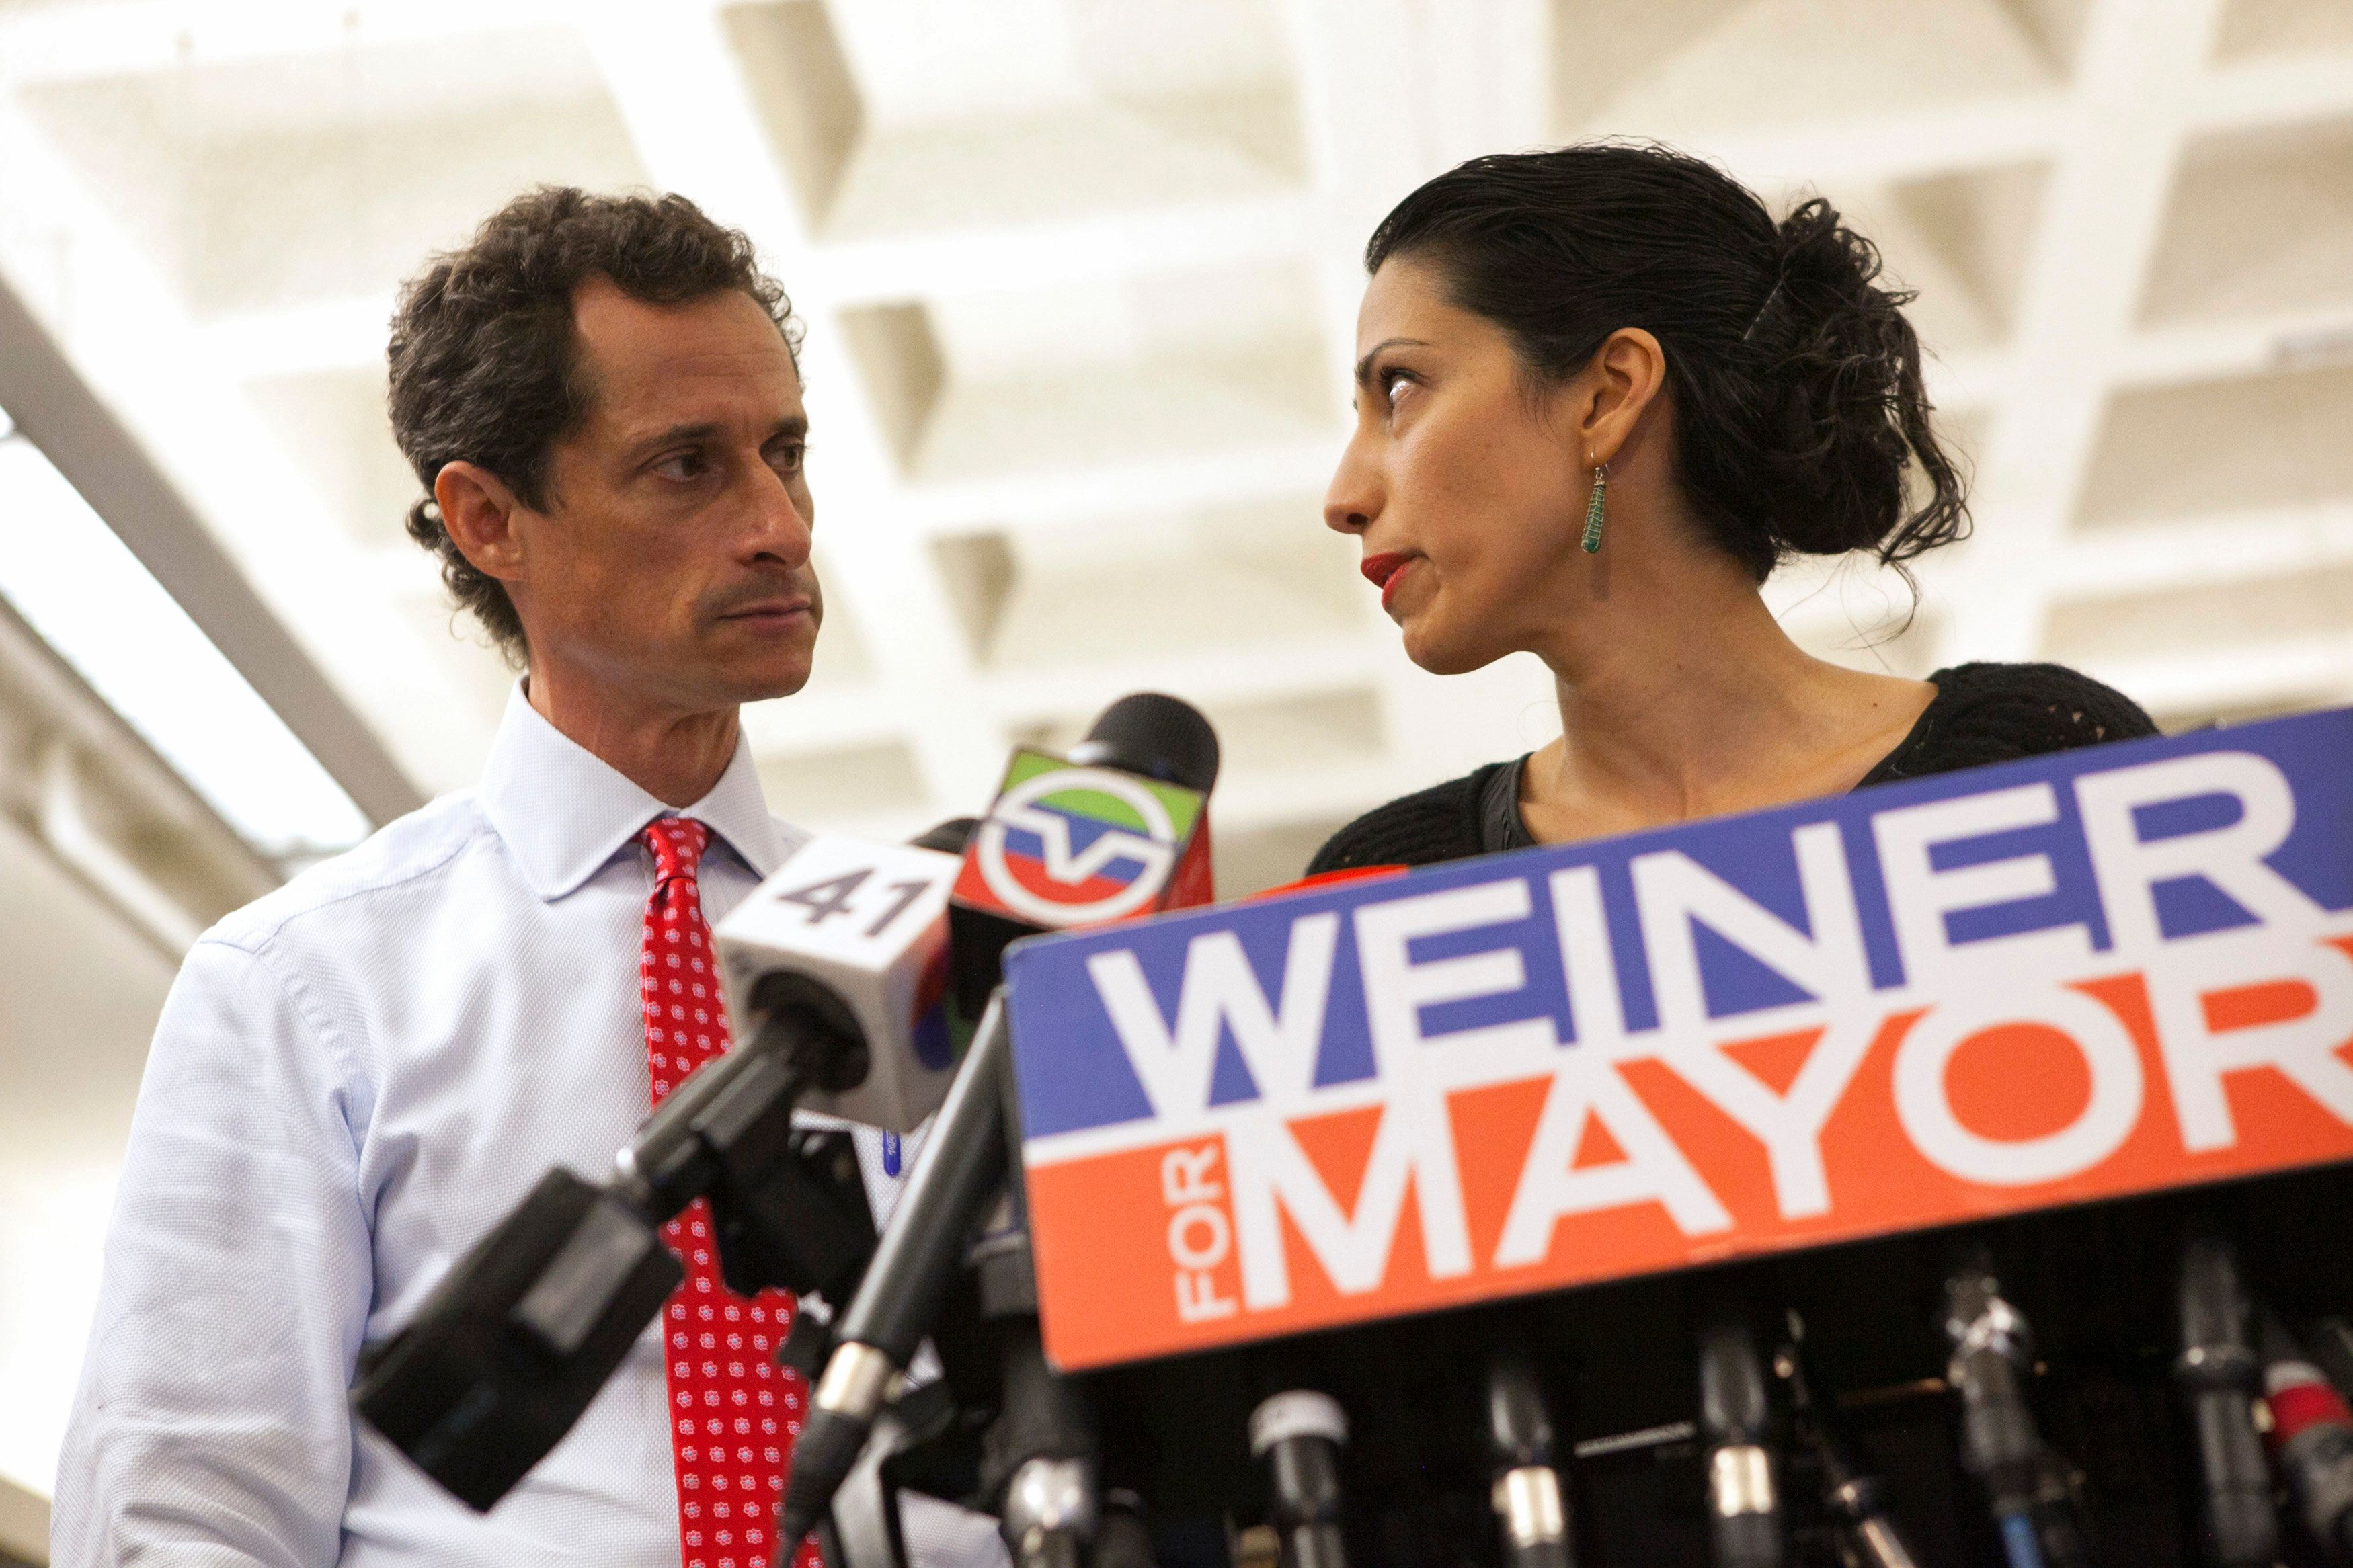 Judge urges Weiner, Abedin to divorce amicably